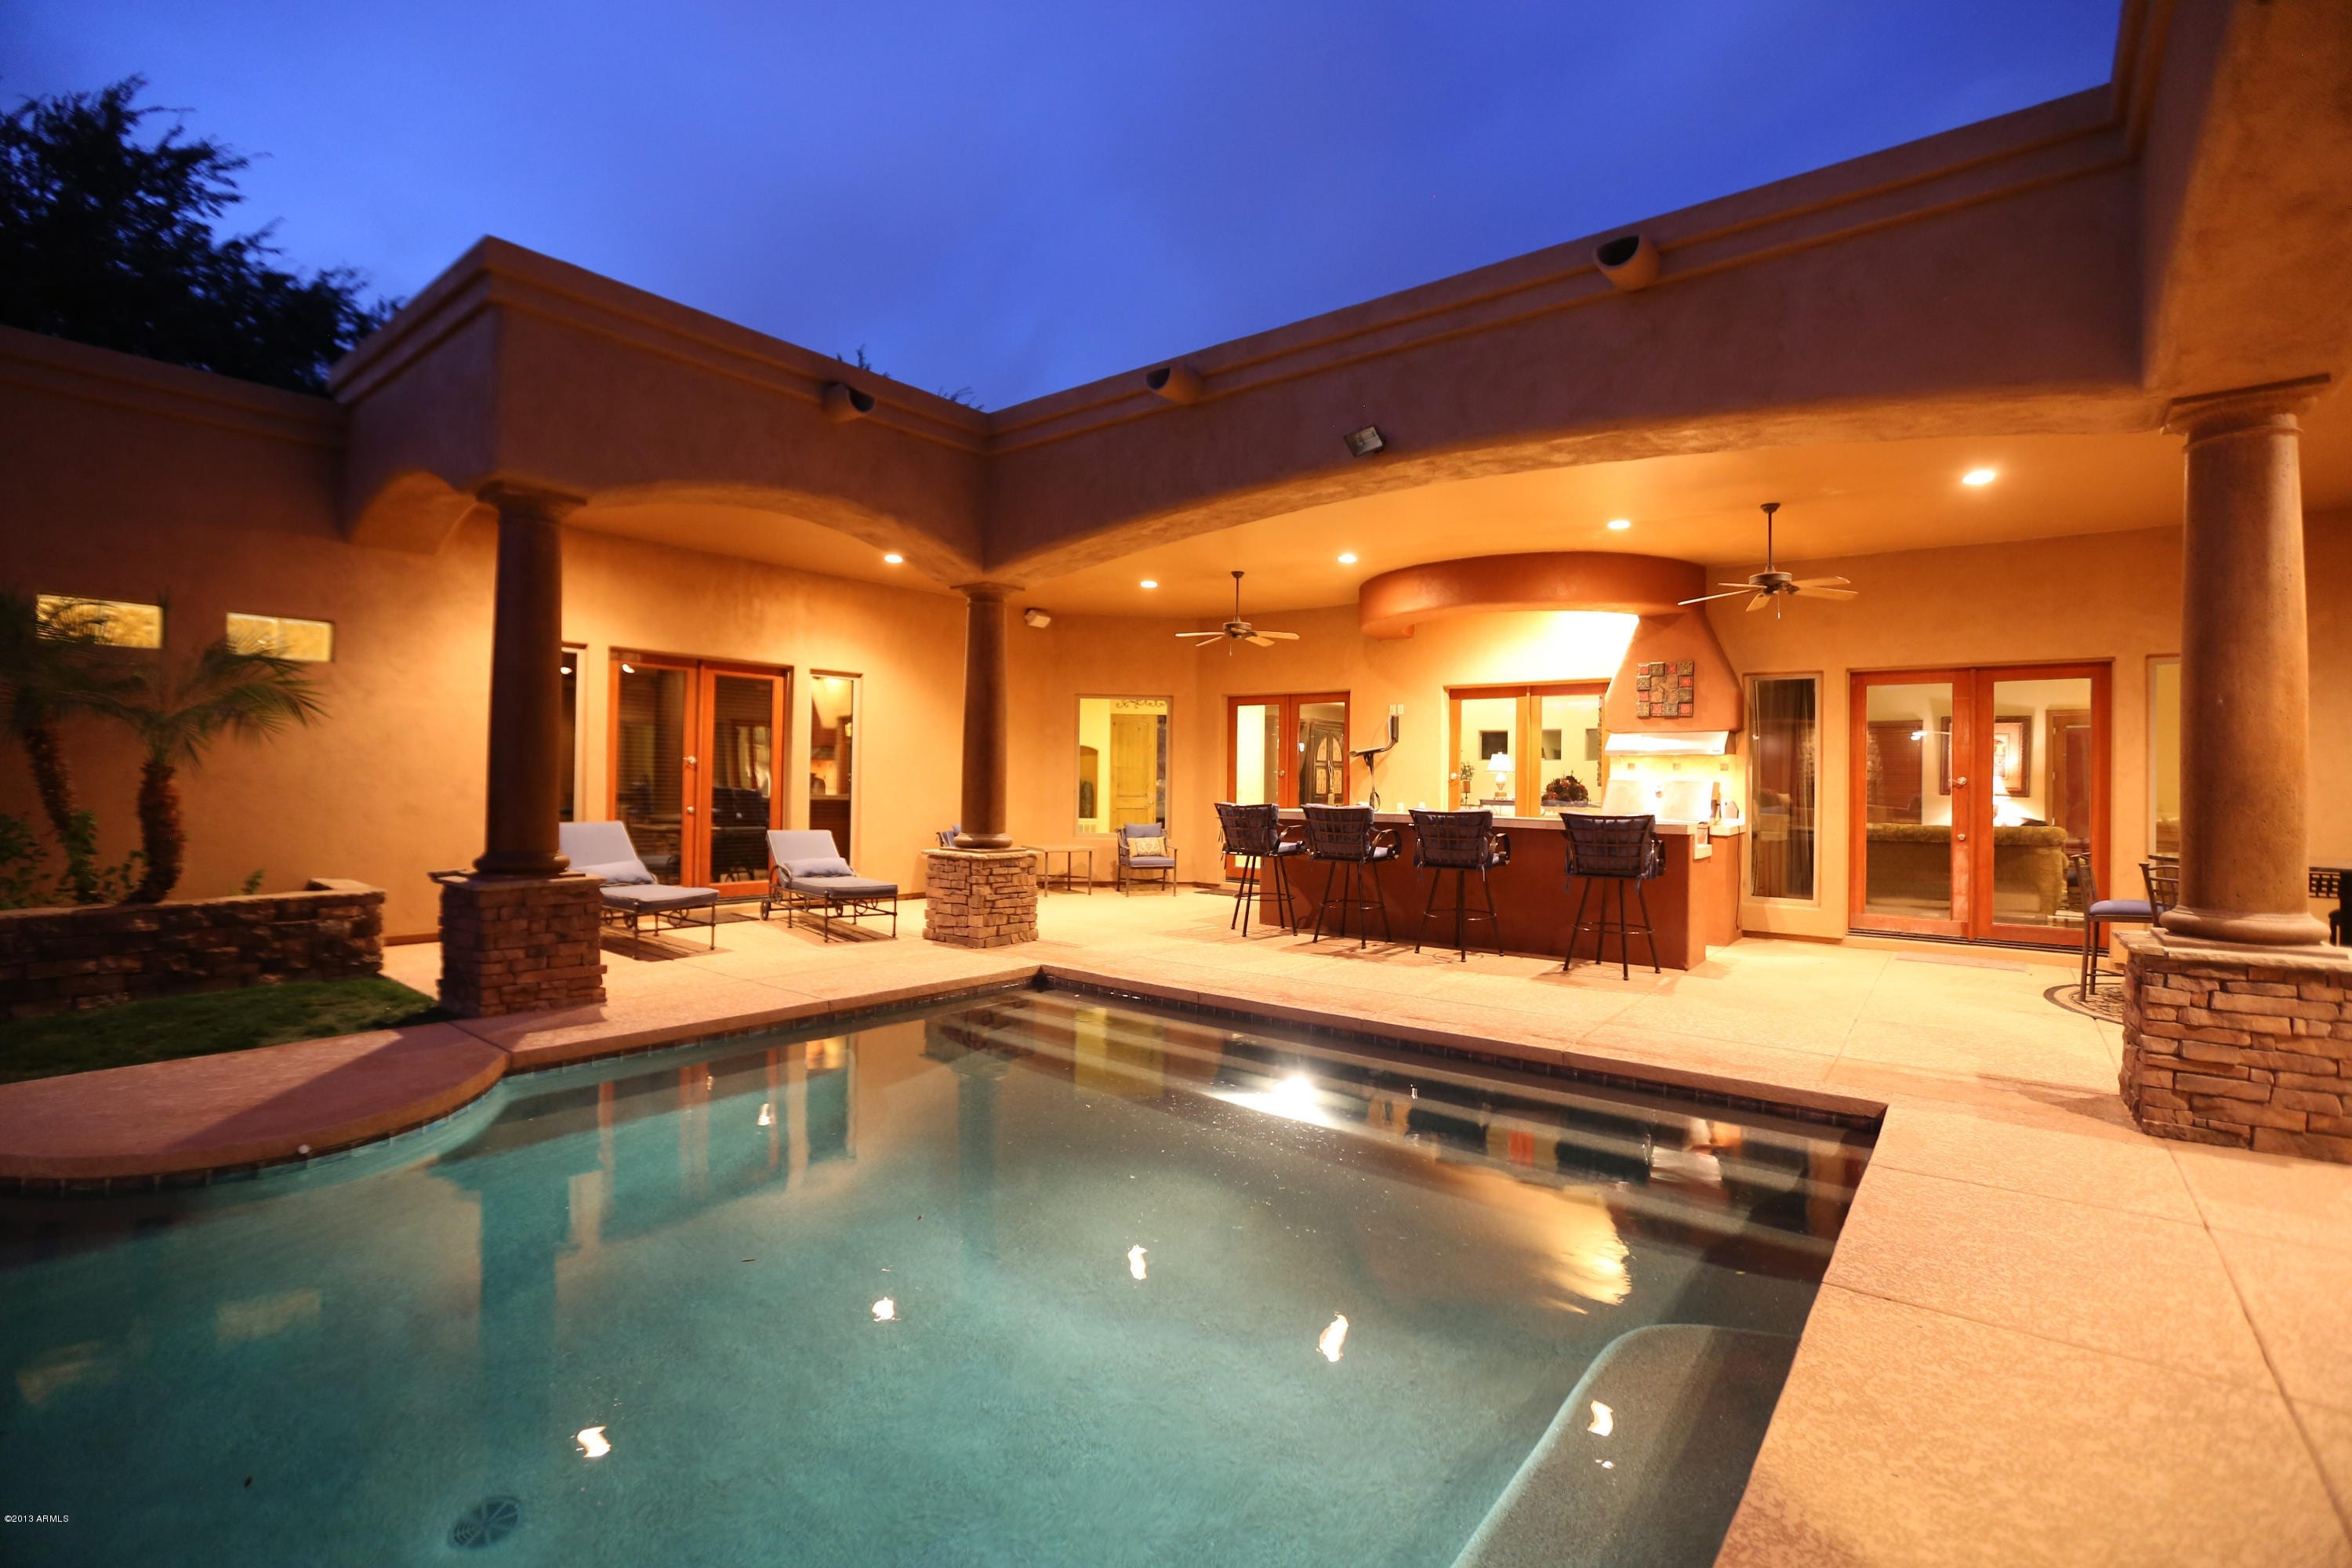 Houses For Sale In Scottsdale Arizona Scottsdale Real Estate Arizona - Luxury homes in scottsdale az